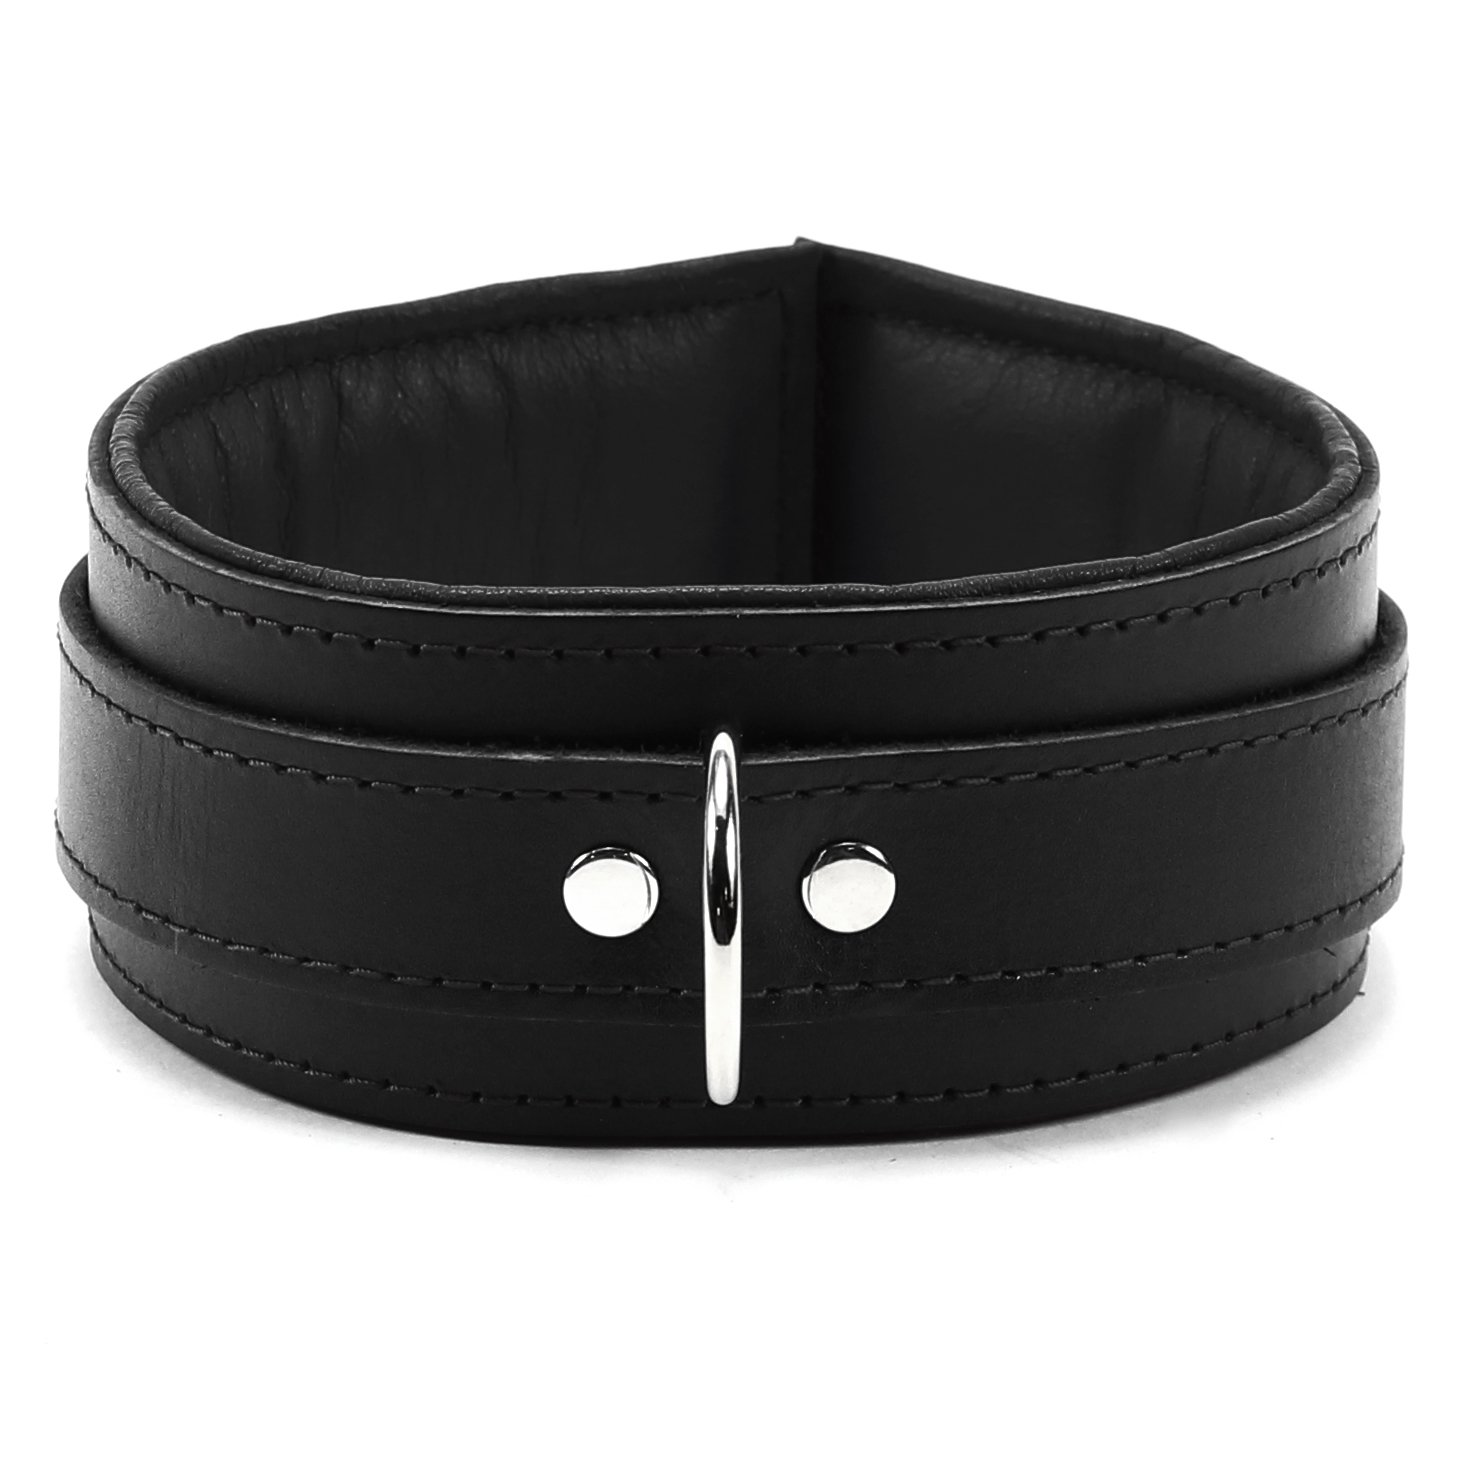 VP Leather Mandrake Collar Premium Handmade Leather - Black